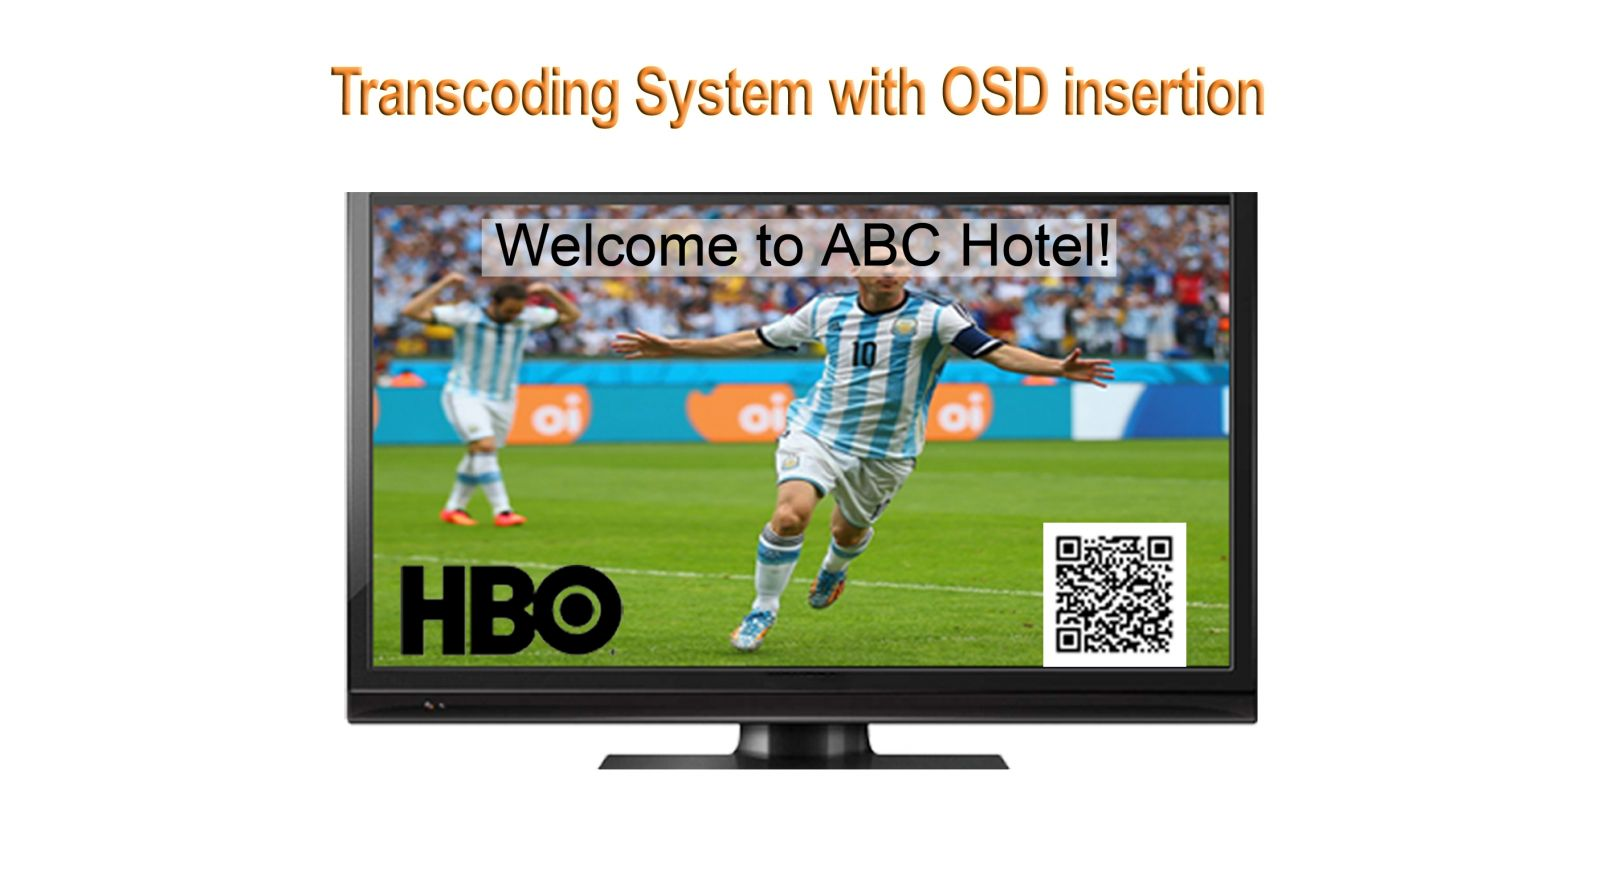 Transcoding System with OSD insertion